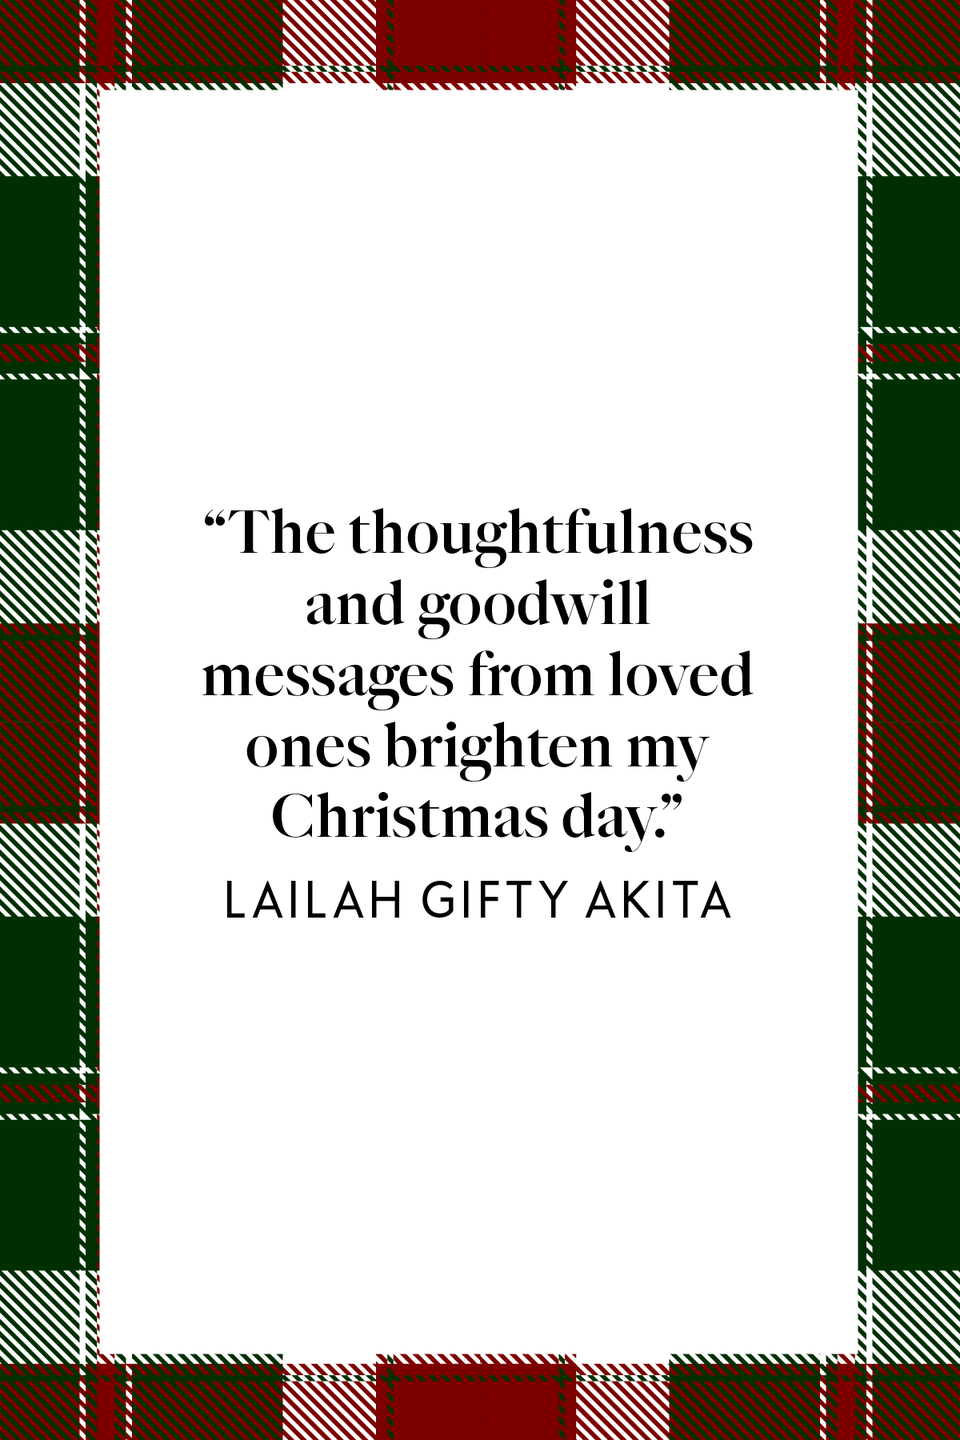 "<p>""The thoughtfulness and goodwill messages from loved ones brighten my Christmas day,"" Ghanaian author and founder of Smart Youth Volunteers Foundation, Lailah Gifty Akita wrote in her book<em> <a href=""https://www.amazon.com/Pearls-Wisdom-Lailah-Gifty-Akita/dp/1511707712?tag=syn-yahoo-20&ascsubtag=%5Bartid%7C10072.g.34536312%5Bsrc%7Cyahoo-us"" rel=""nofollow noopener"" target=""_blank"" data-ylk=""slk:Pearls of Wisdom: Great Mind"" class=""link rapid-noclick-resp"">Pearls of Wisdom: Great Mind</a></em>.</p>"